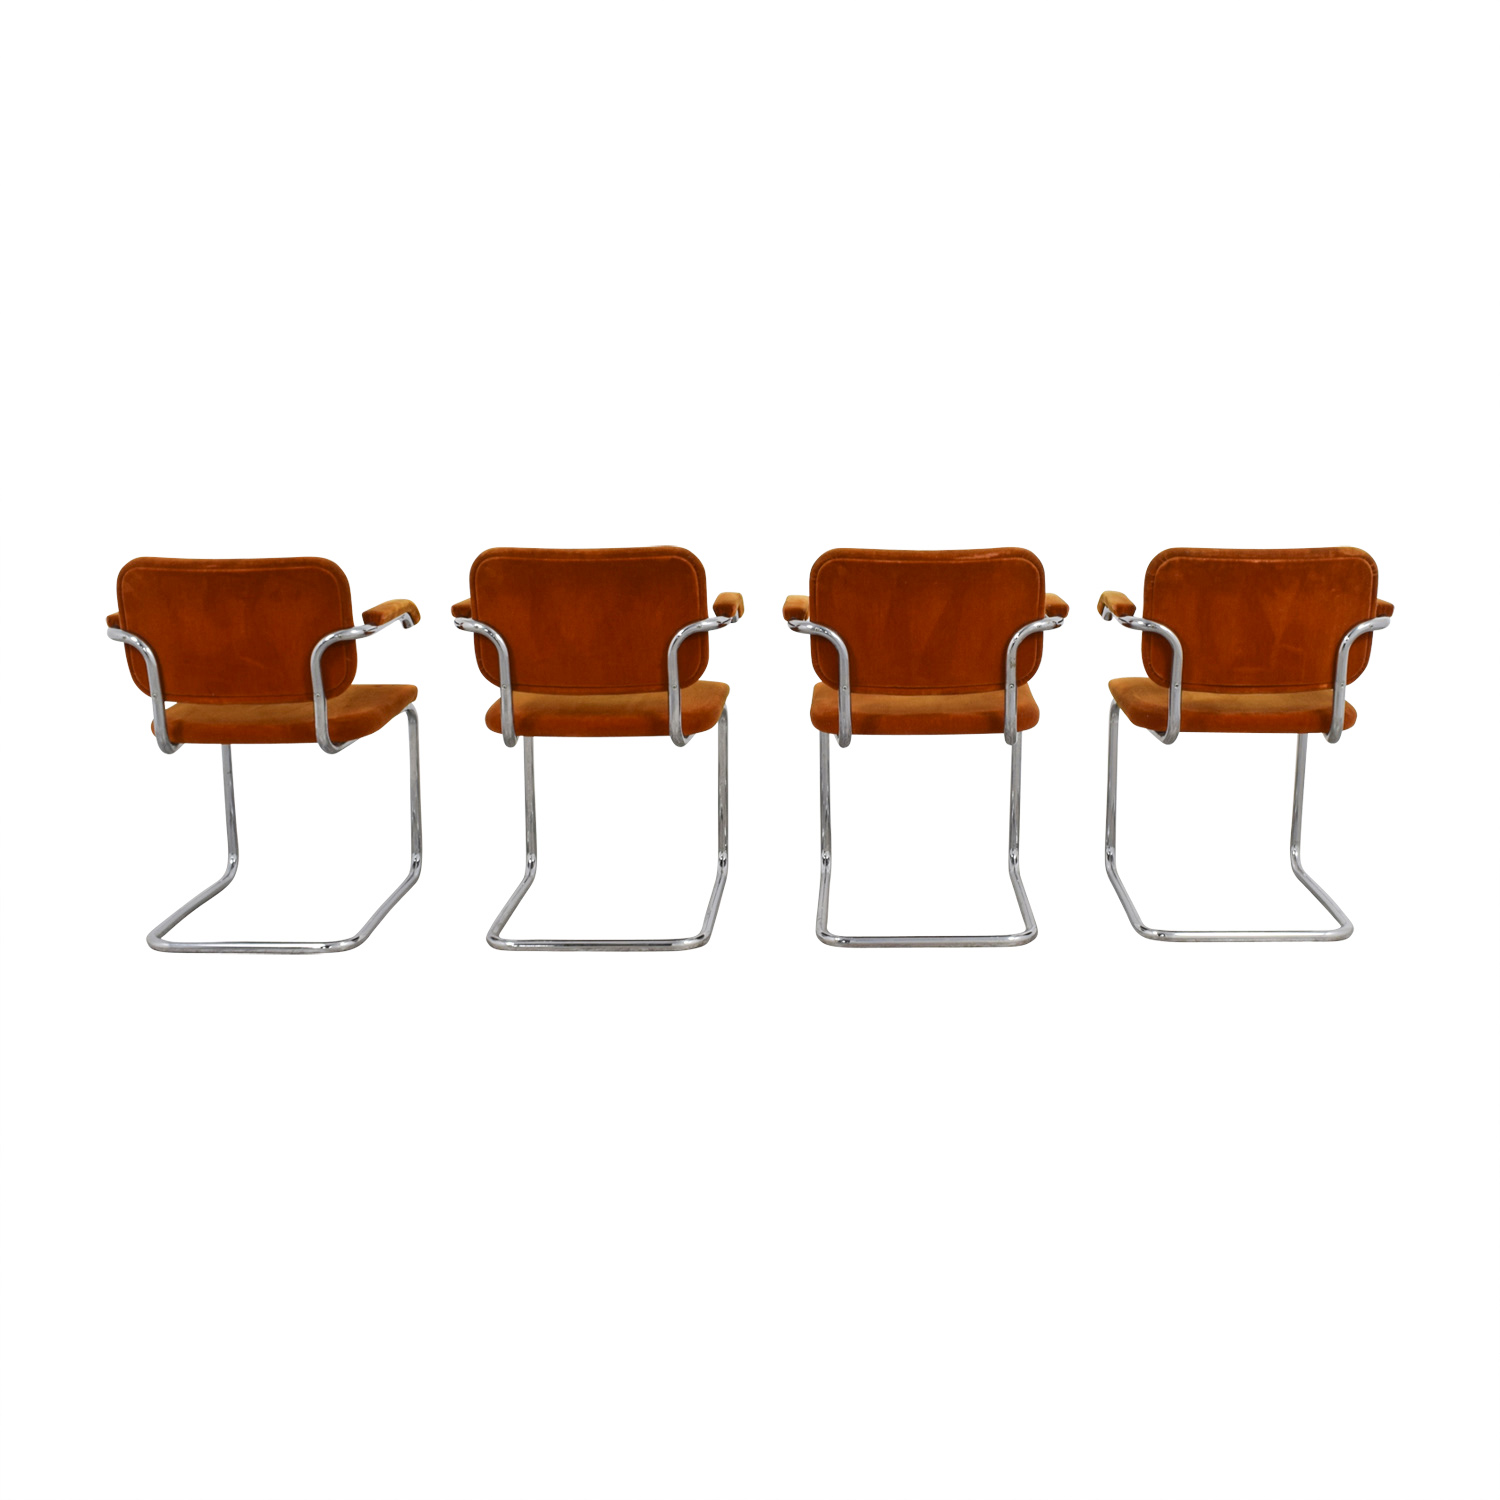 breuer chairs for sale child couch chair 51 off knoll m cesca buy online